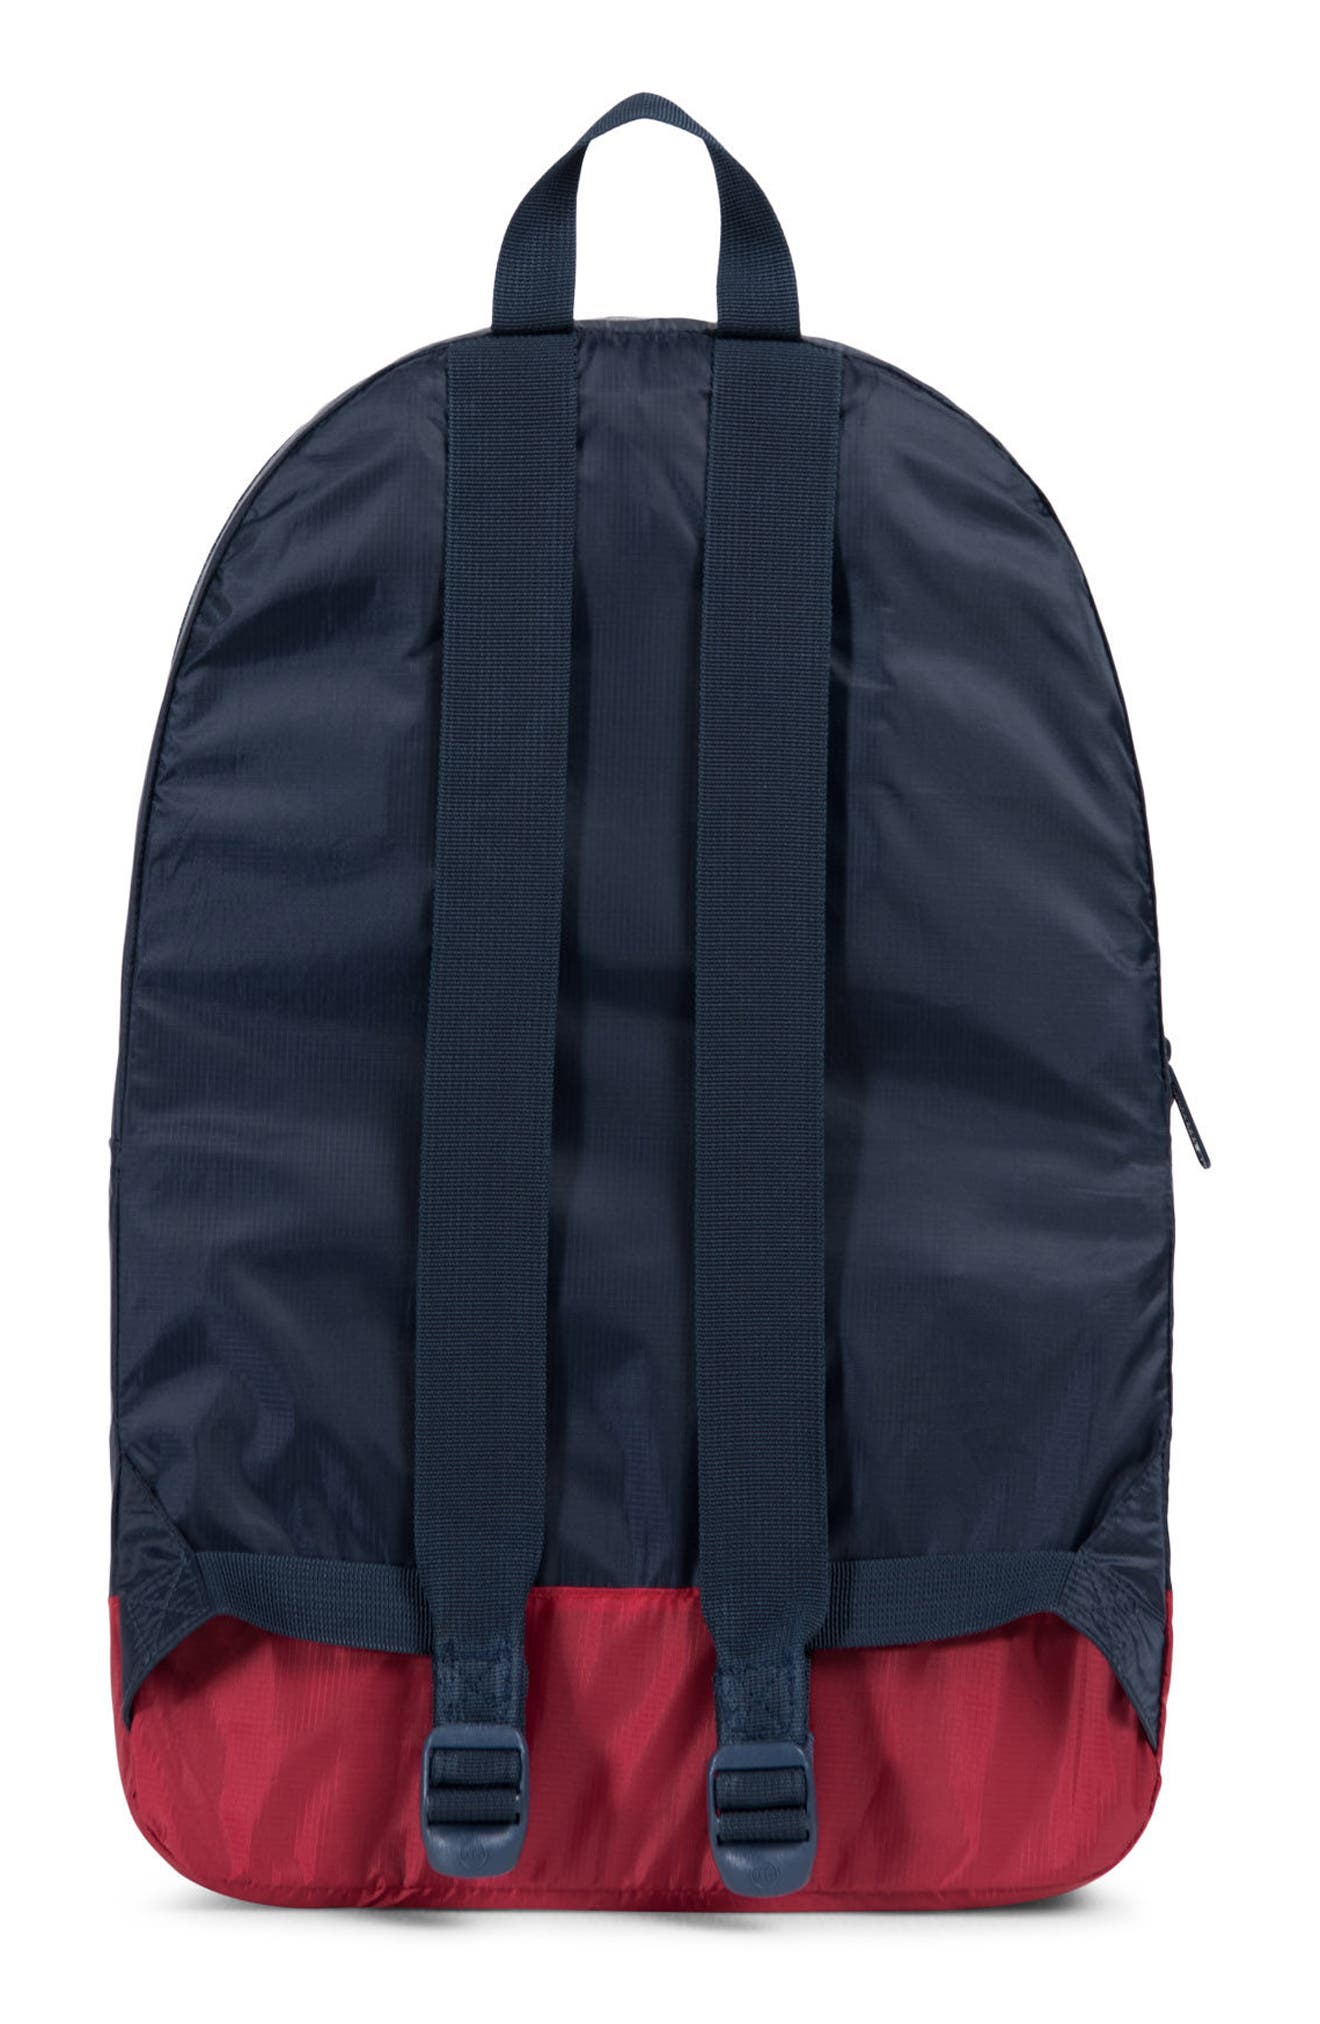 Packable Daypack,                             Alternate thumbnail 2, color,                             Navy/ Red